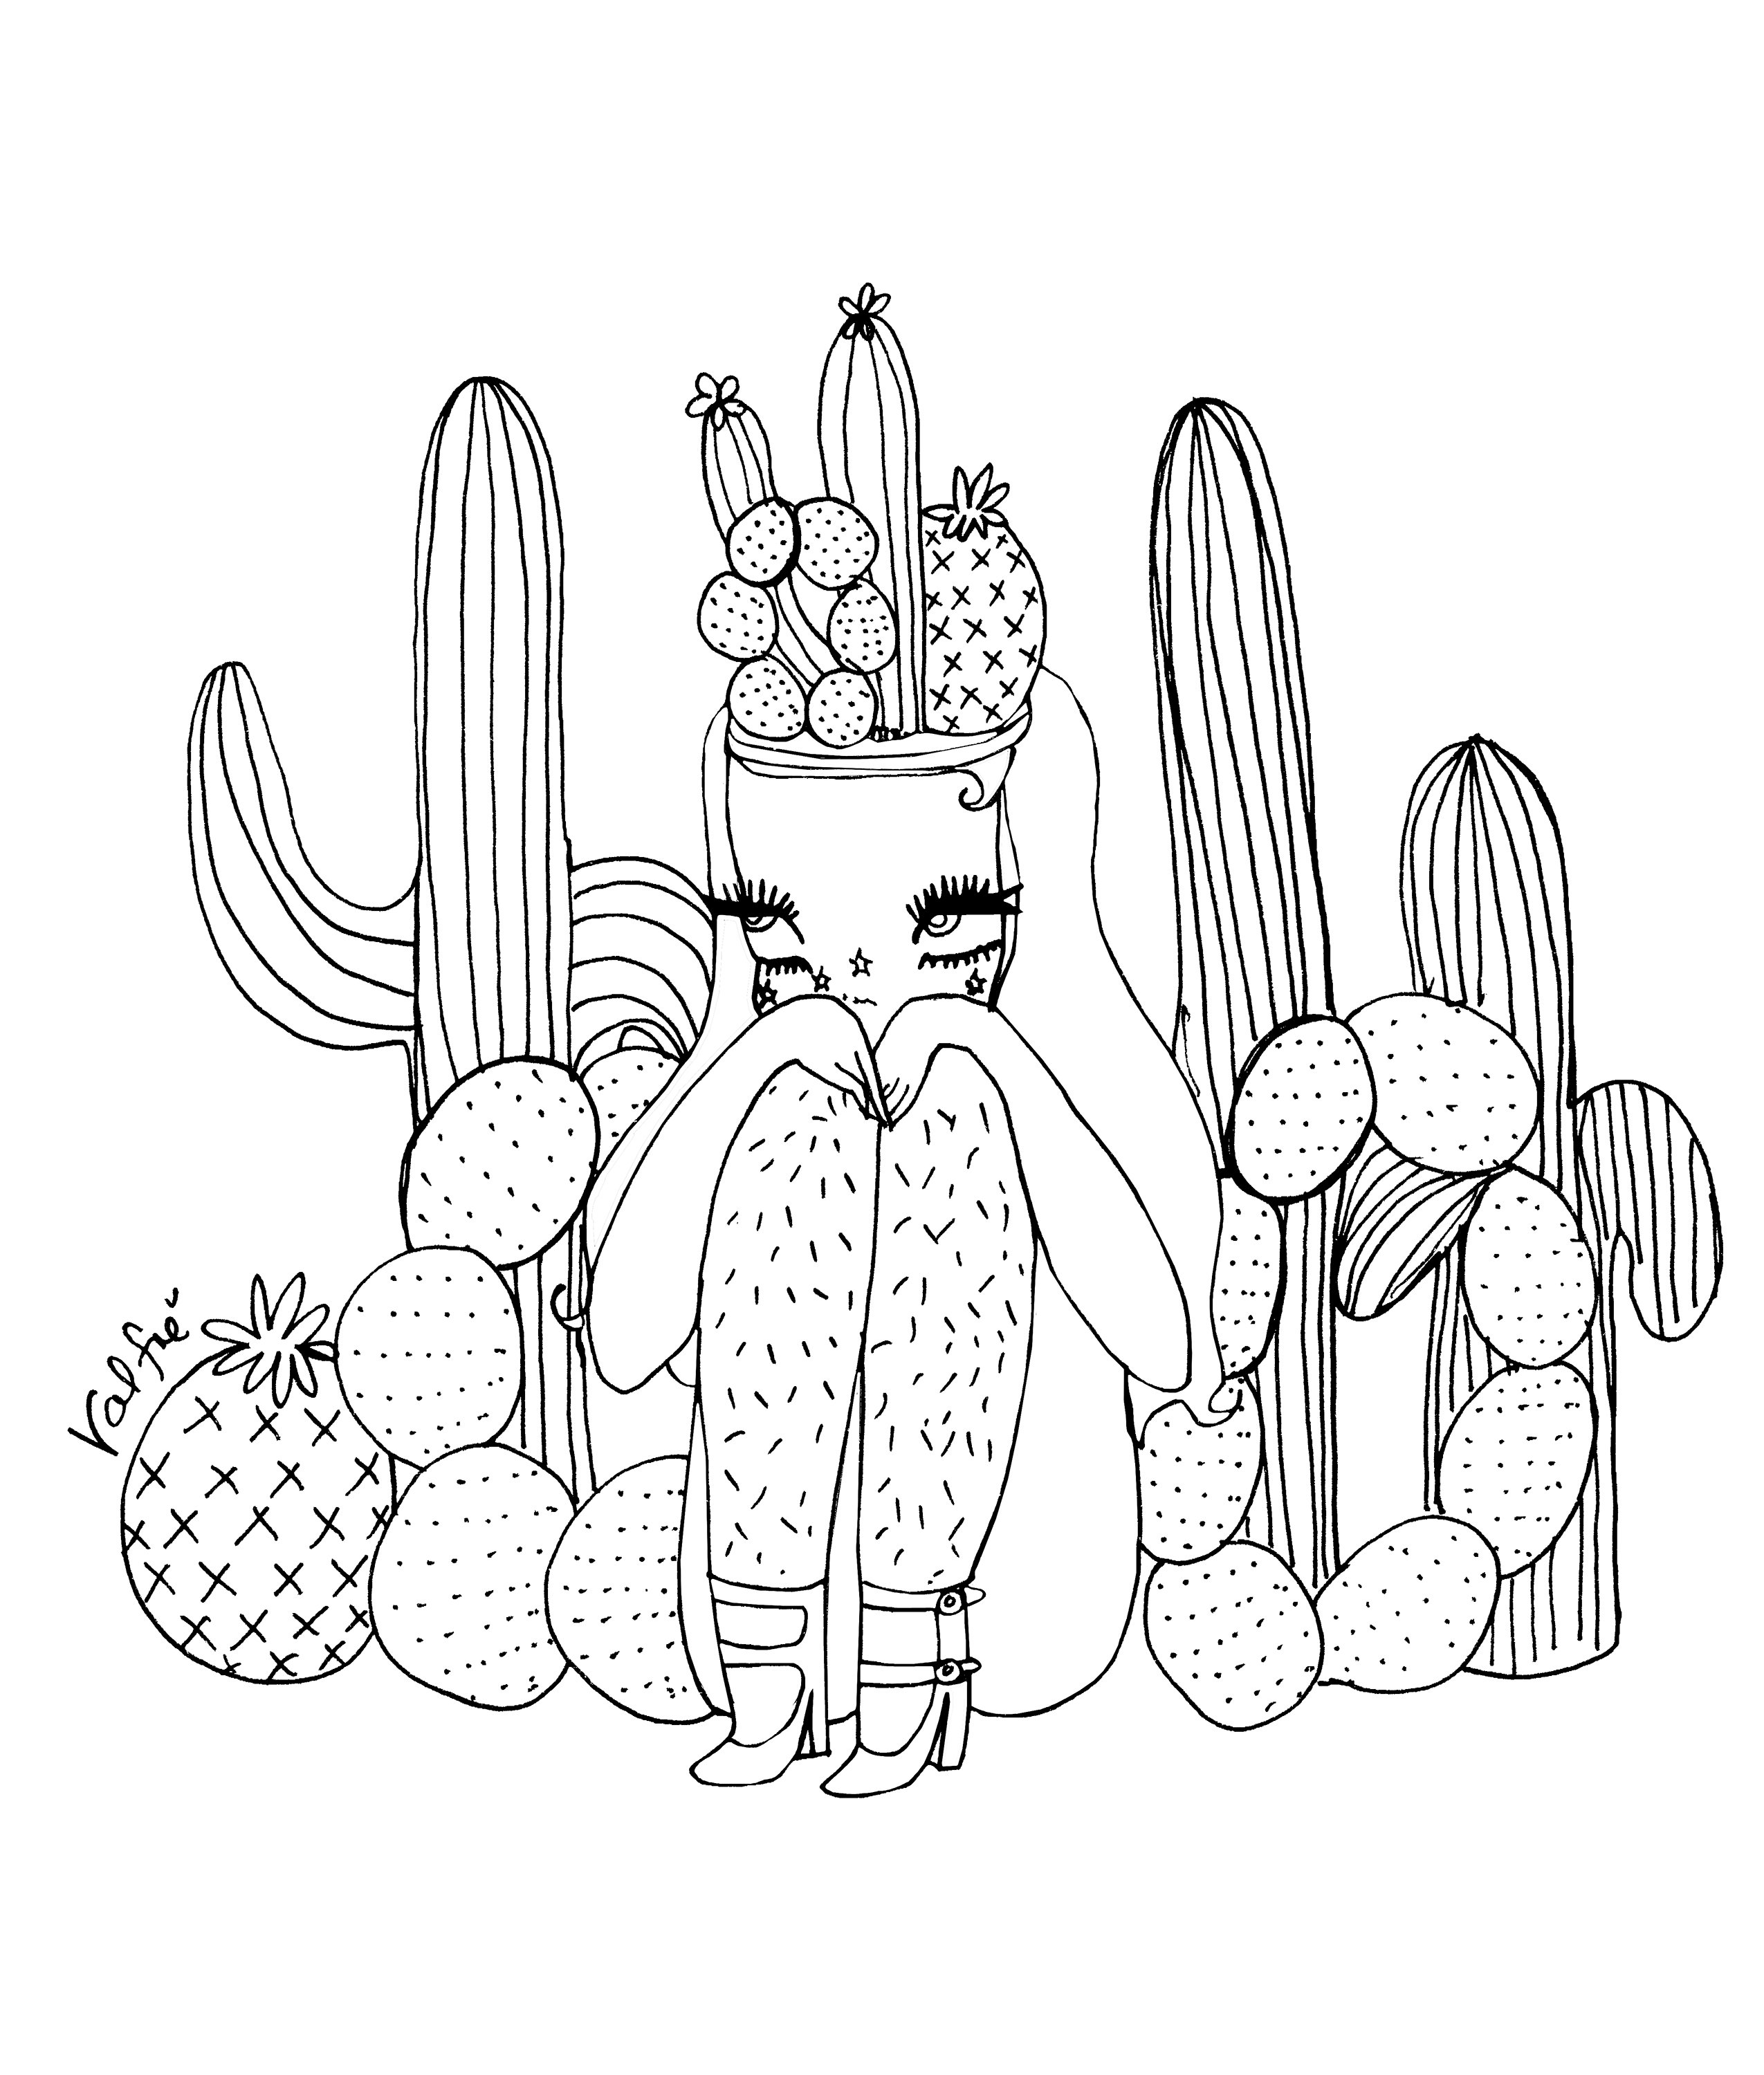 coloring pages aesthetic easy aesthetic coloring pages christmas baylee jae artng pages aesthetic coloring